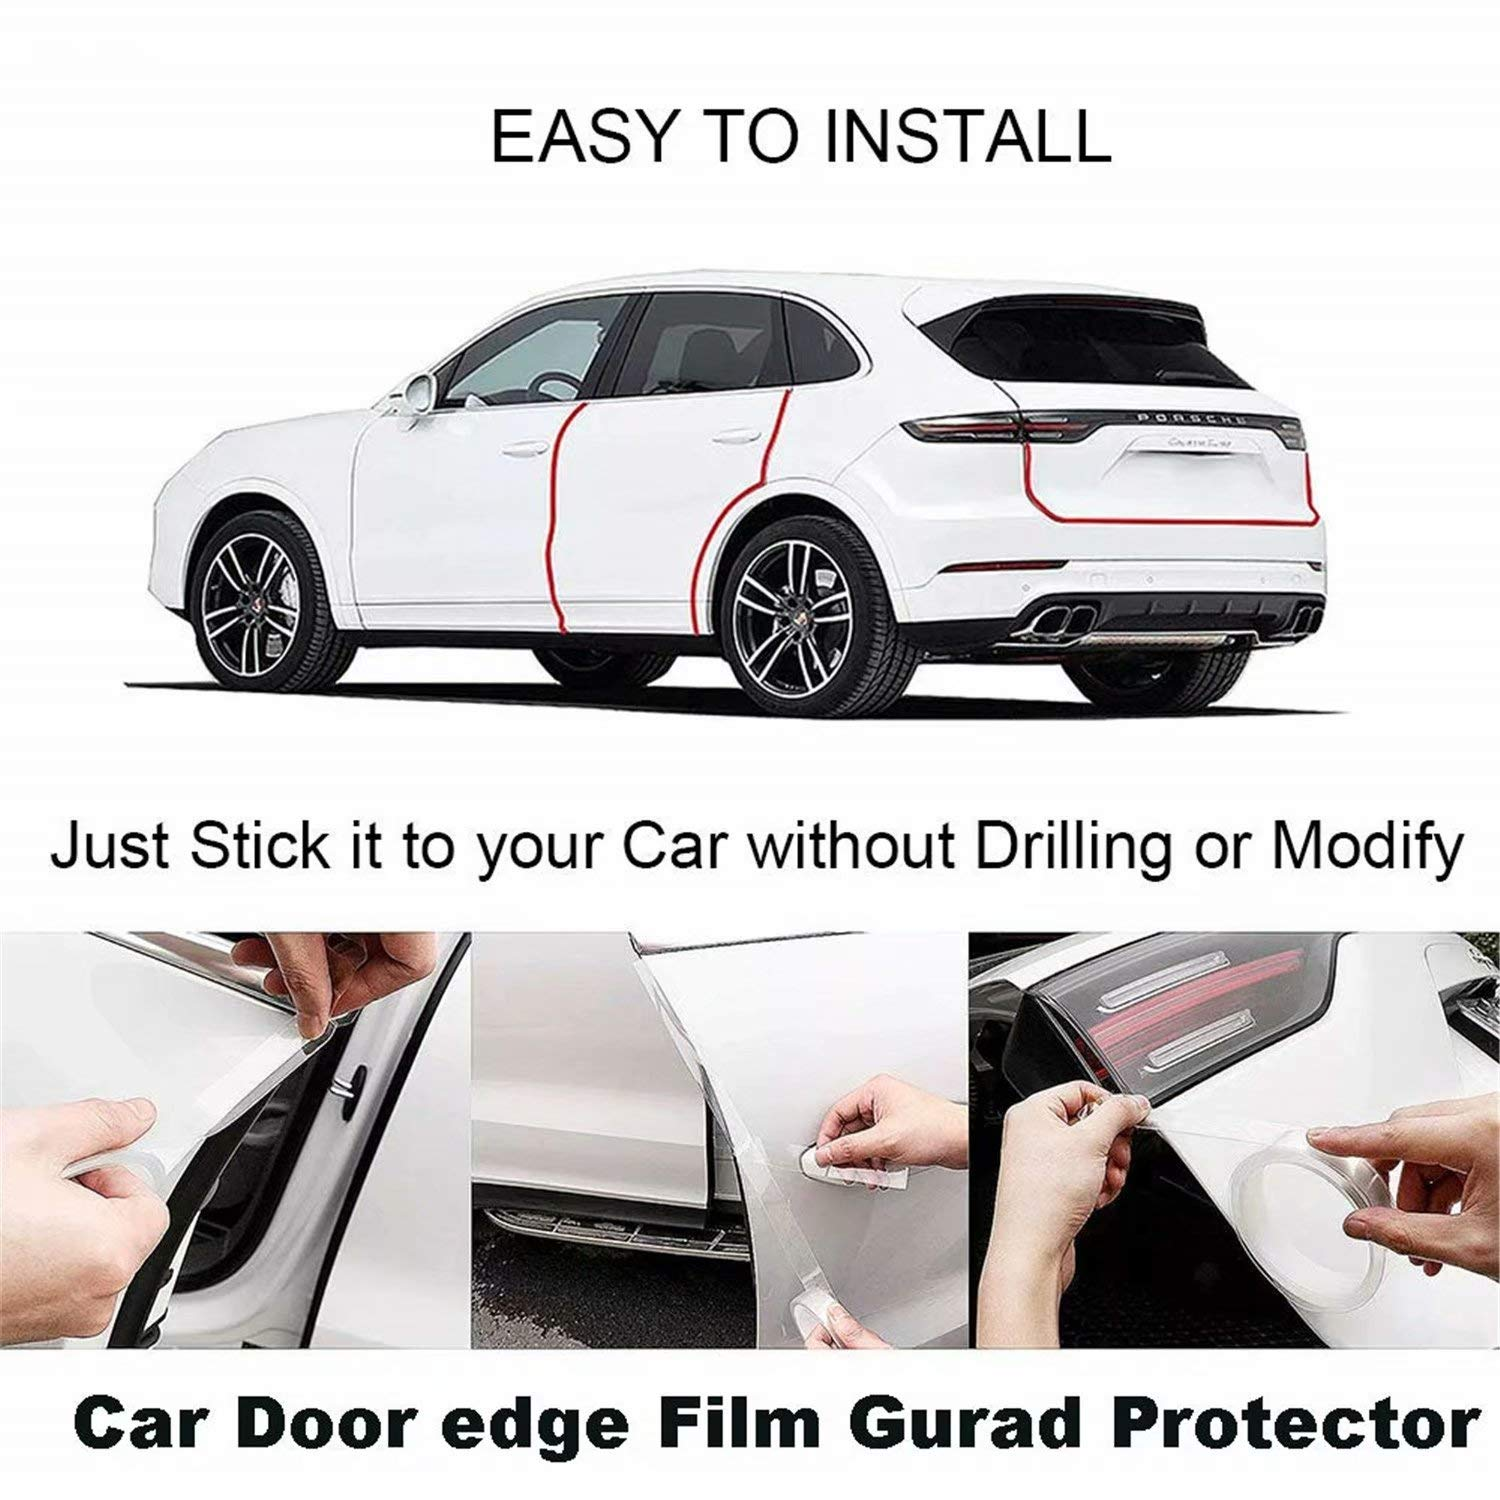 Hukimoyo® Anti-Scratch Car Strips, Transparent Car Door Tape Edge Guard Protector, Invisible Adhesive Seal Strip Scratch Resistant Car Anti-Collision Strips (1 Pc)